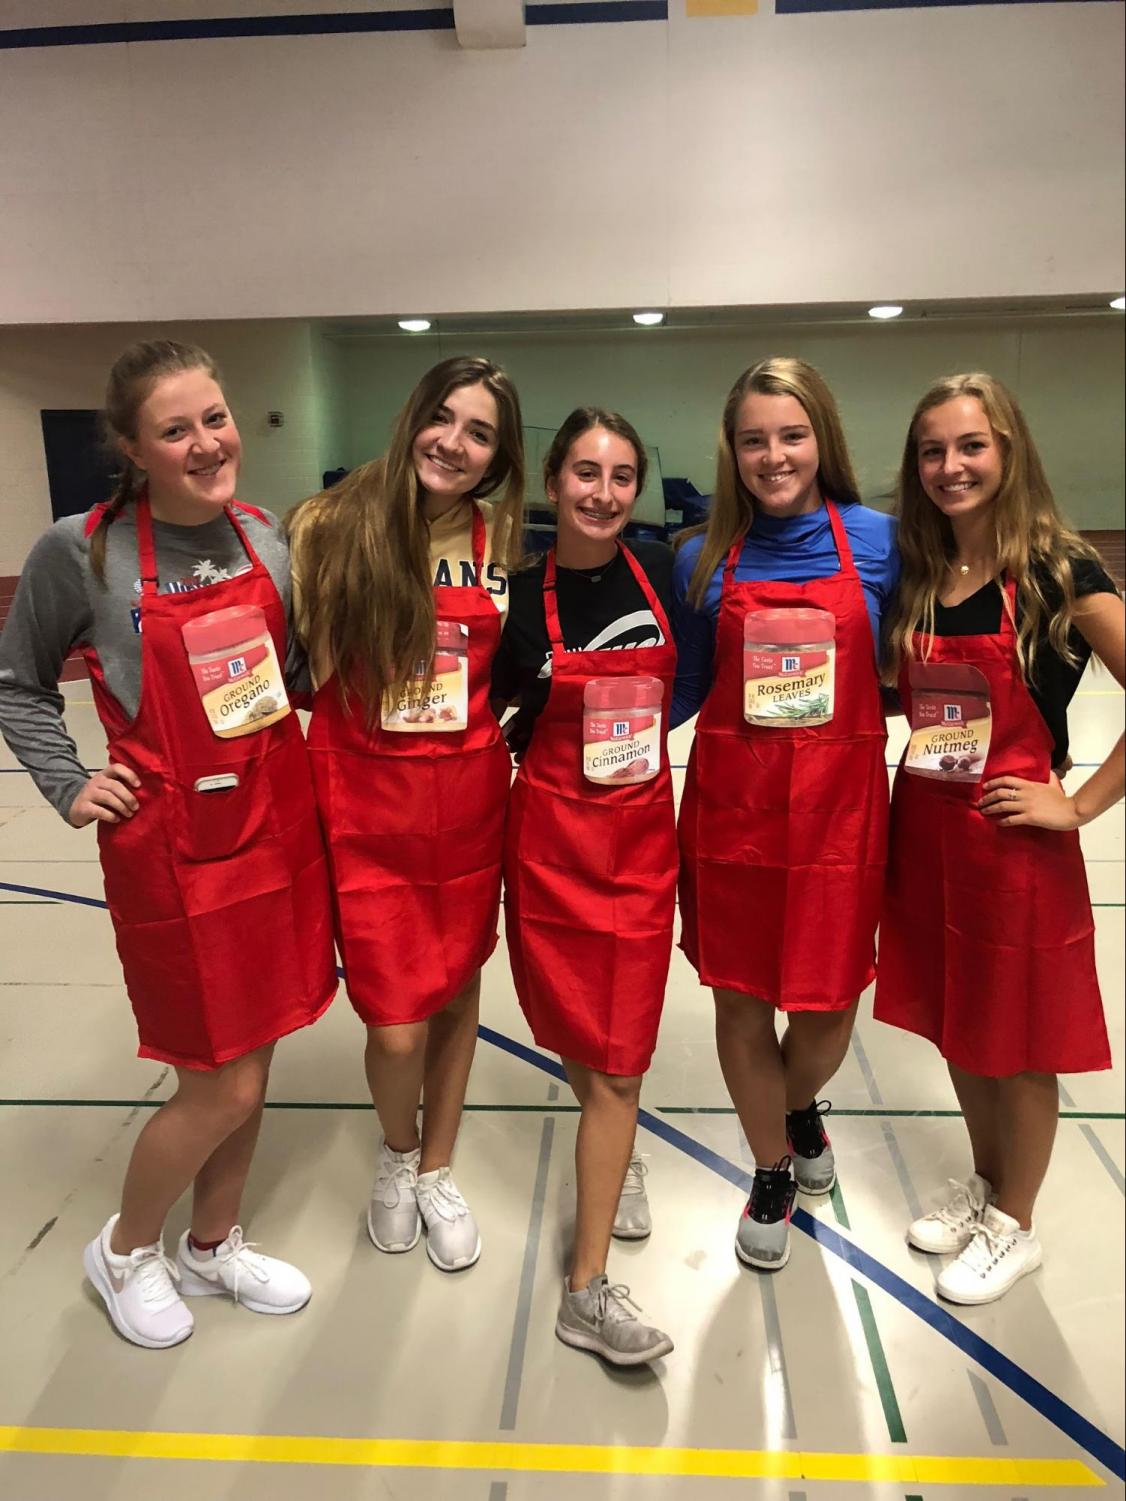 "(Left to right) Juniors Amy Schwem, Sophie Tally, Lea Gaetto, Morgan Wrublik and Abbey Ascoloni dressed up as ""Spice Girls"" for Pun day."